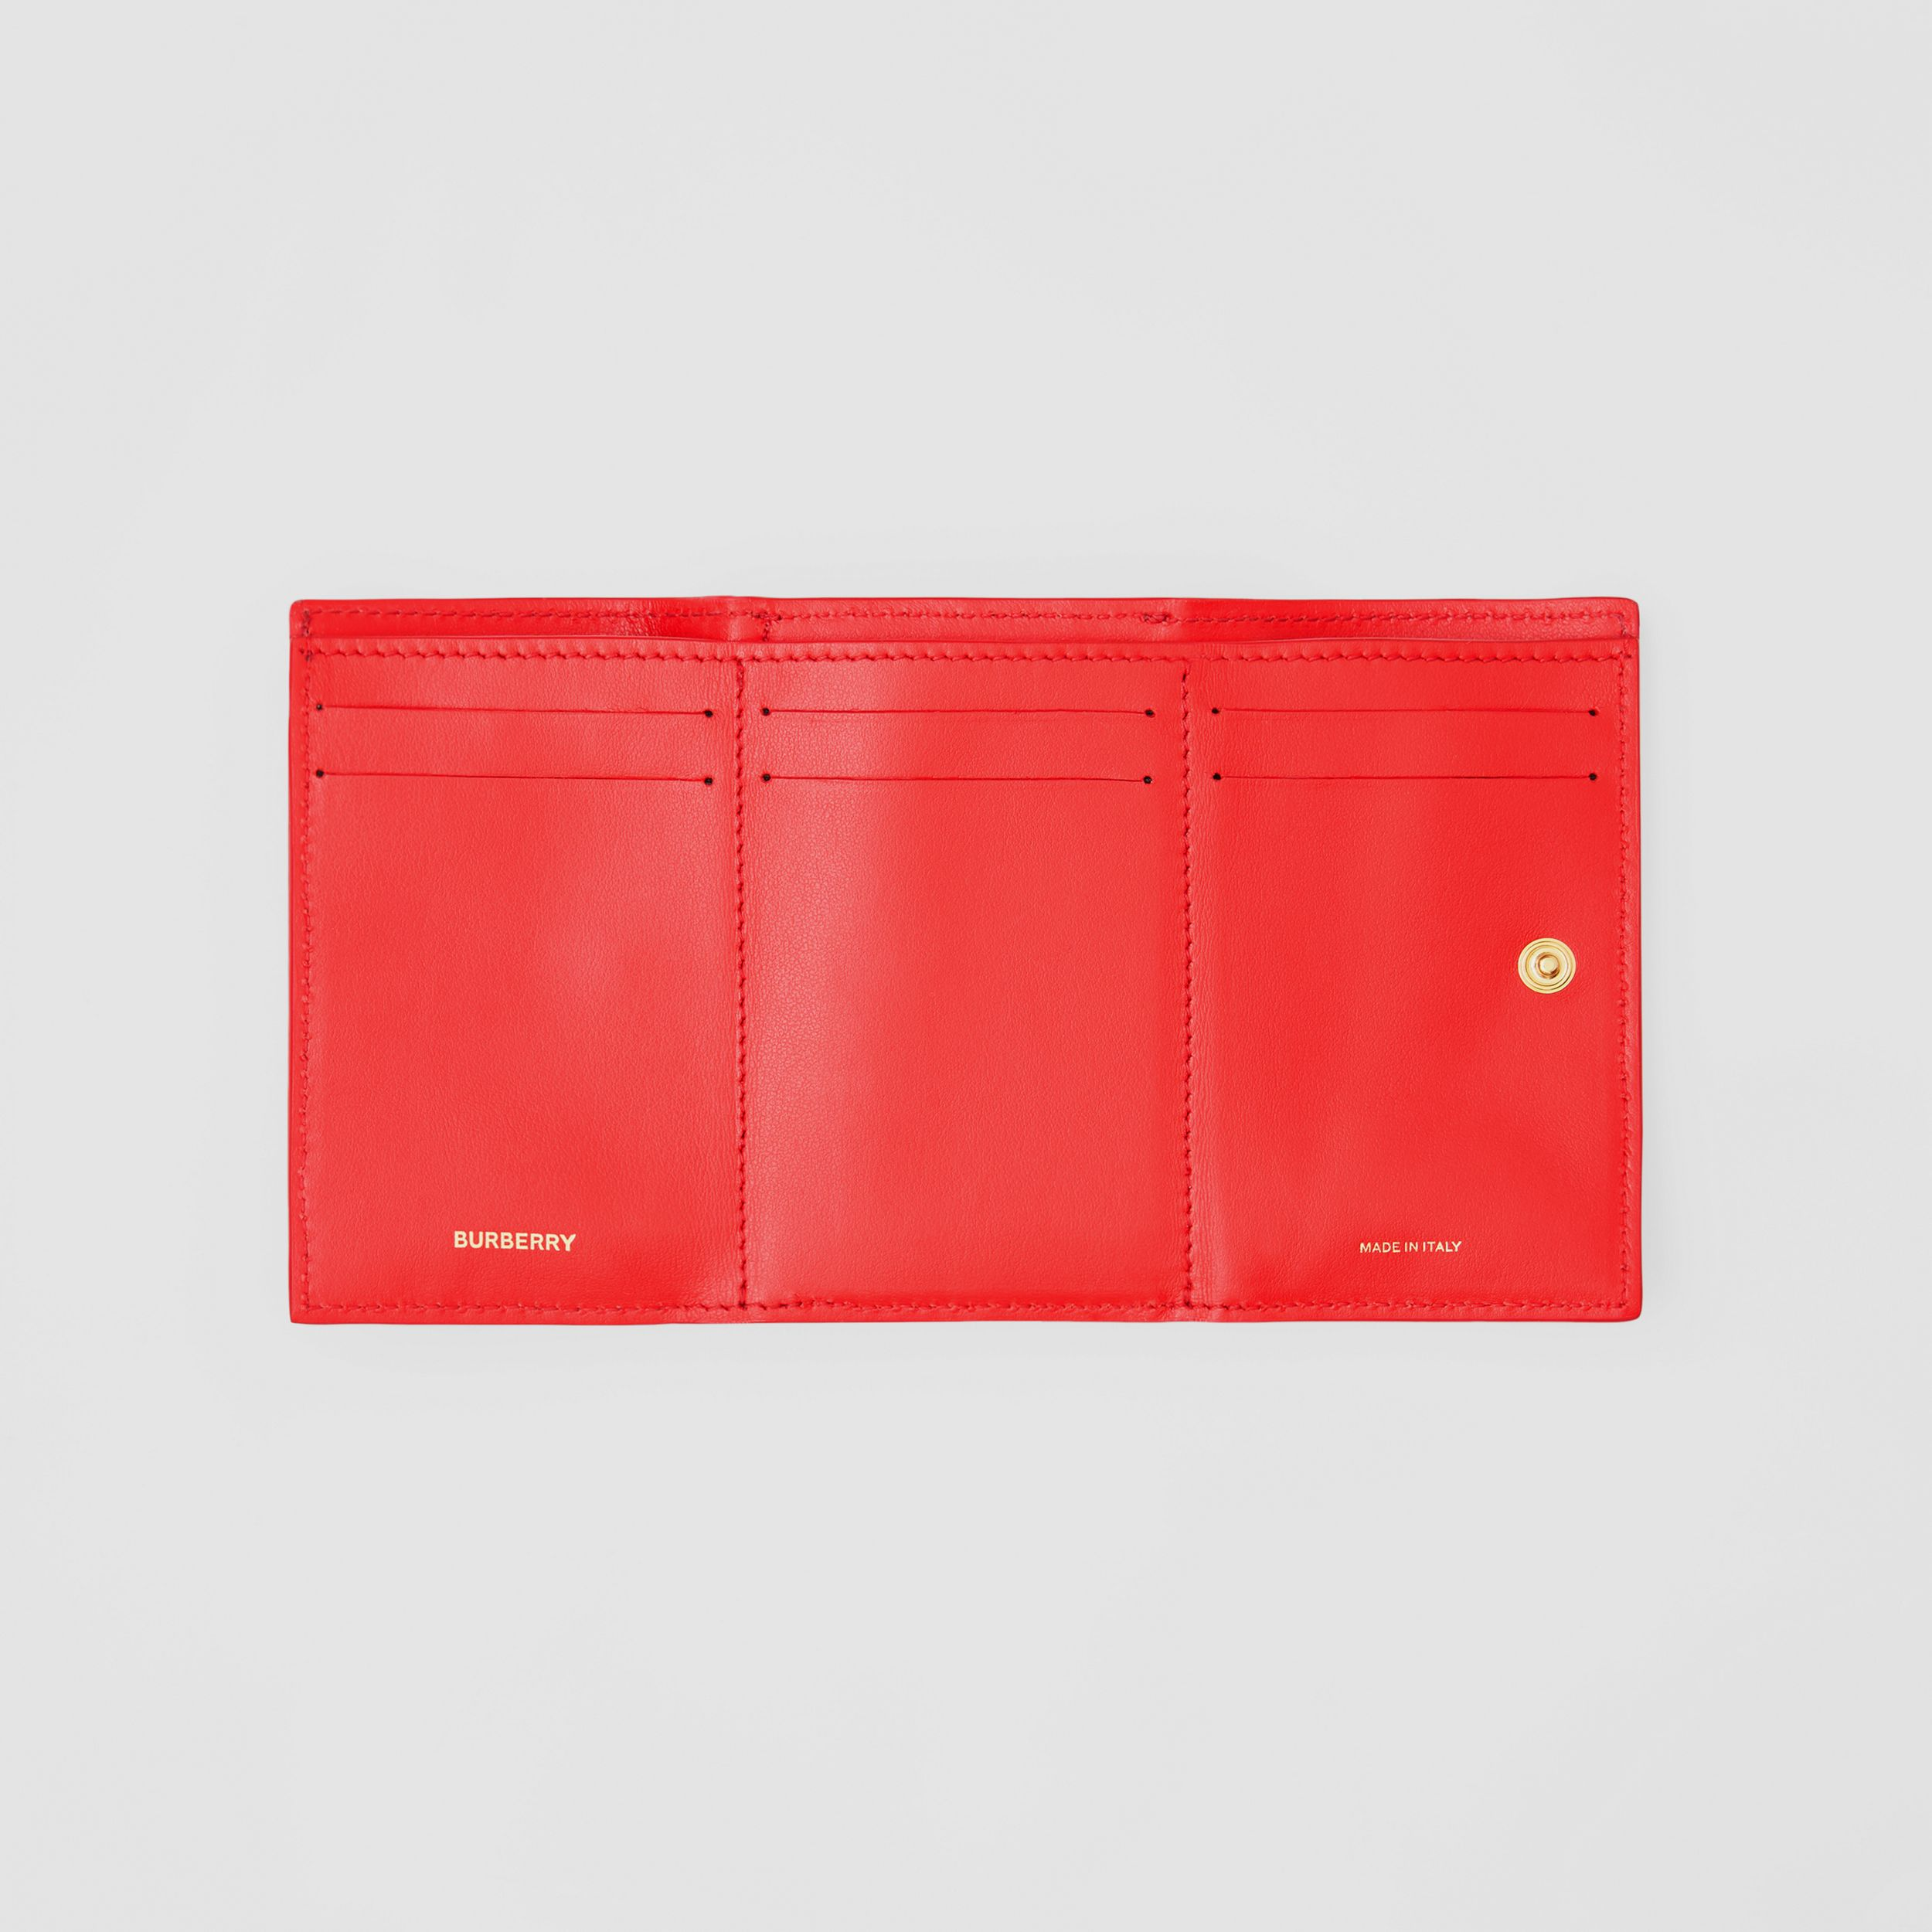 Small Grainy Leather Folding Wallet in Bright Red - Women | Burberry - 3